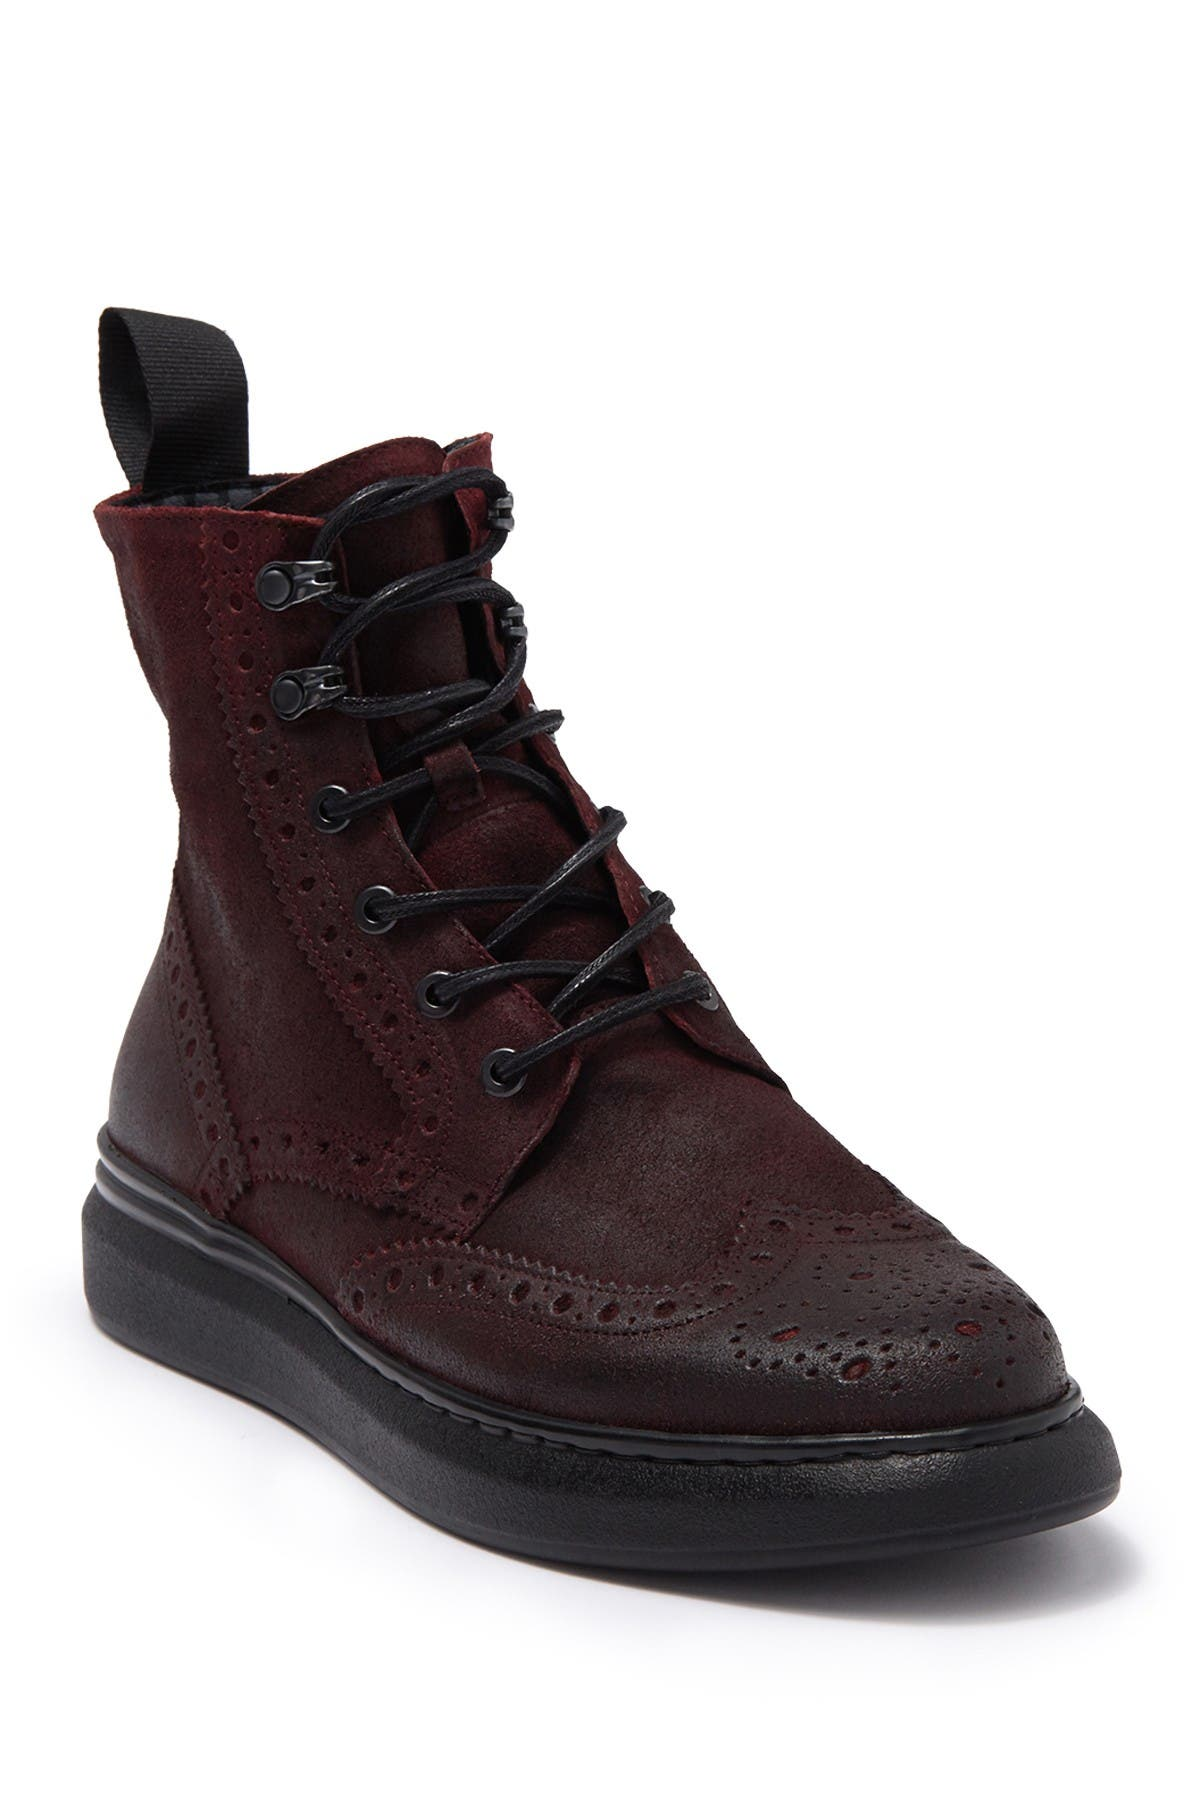 Image of Karl Lagerfeld Paris Oxblood Burnished Suede Combat Boot